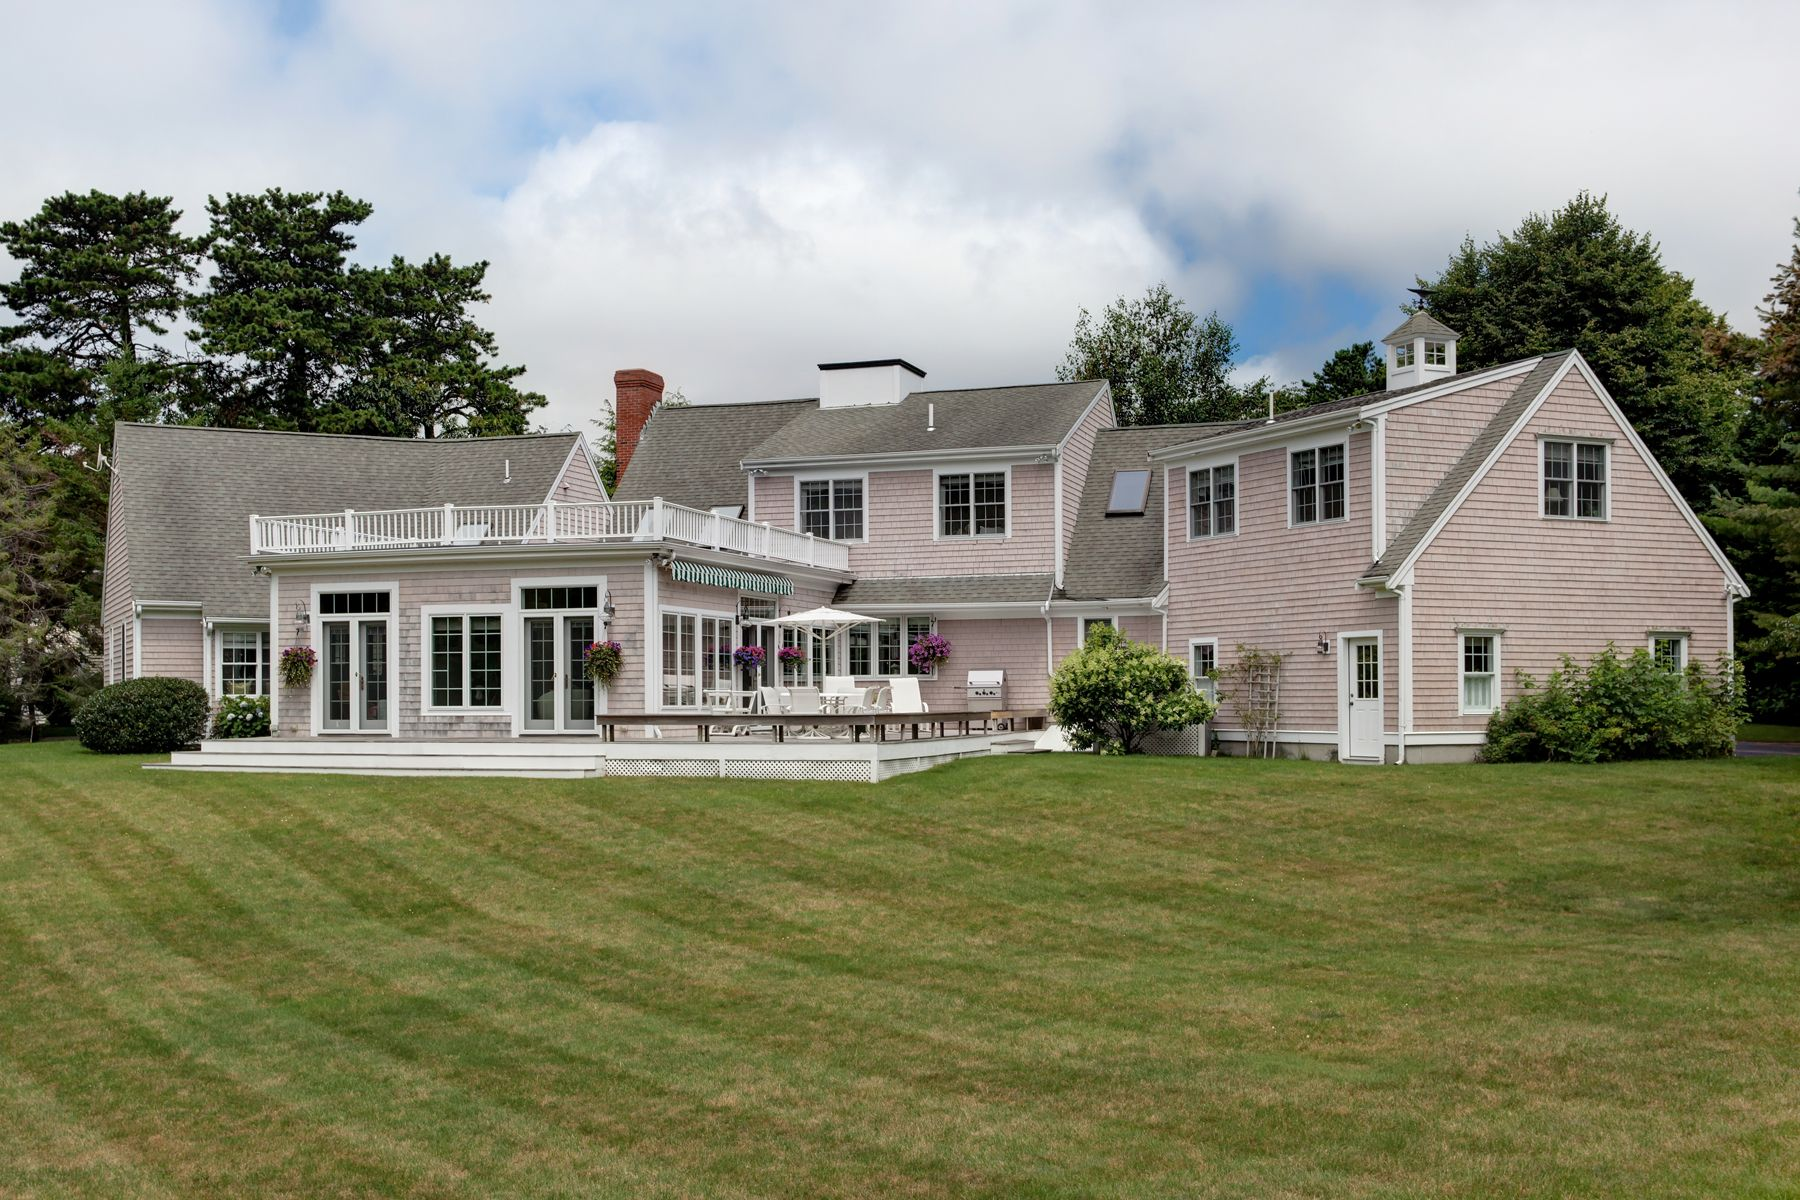 Single Family Homes for Active at 47 Farm Valley Rd, Osterville, MA 47 Farm Valley Rd Osterville, Massachusetts 02655 United States